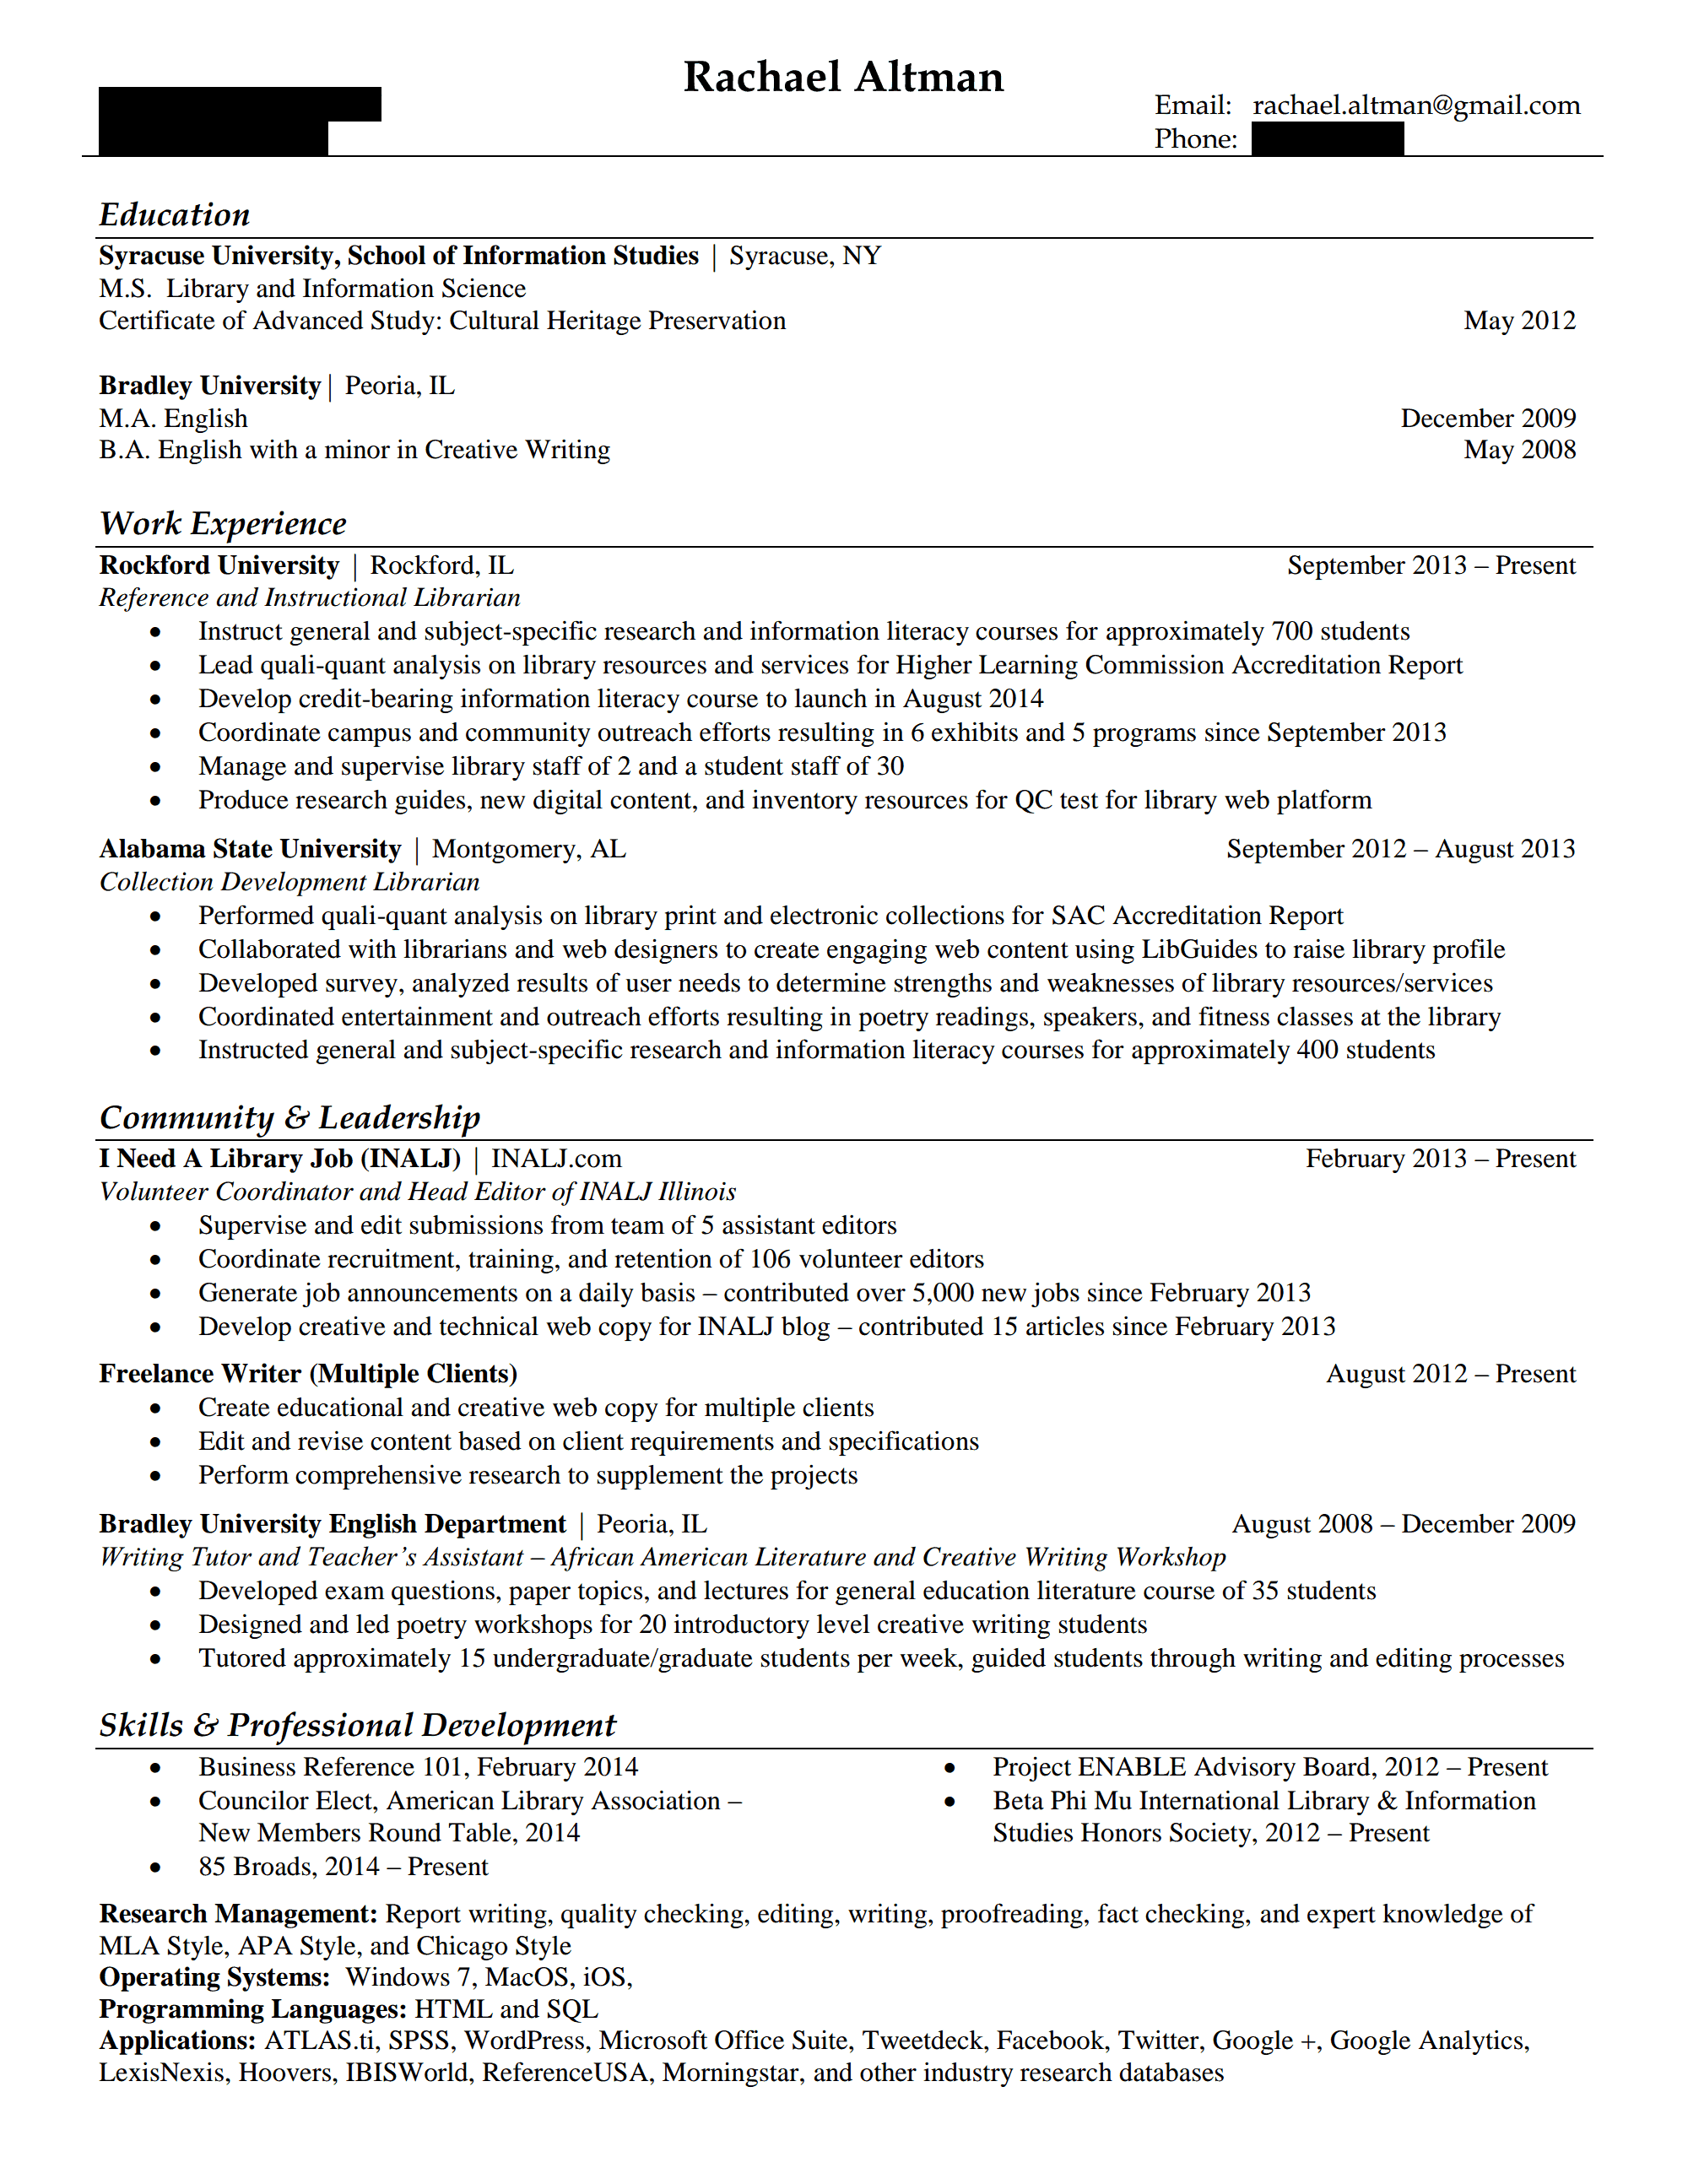 other organization or library type hiring librarians rachaelaltman resume1